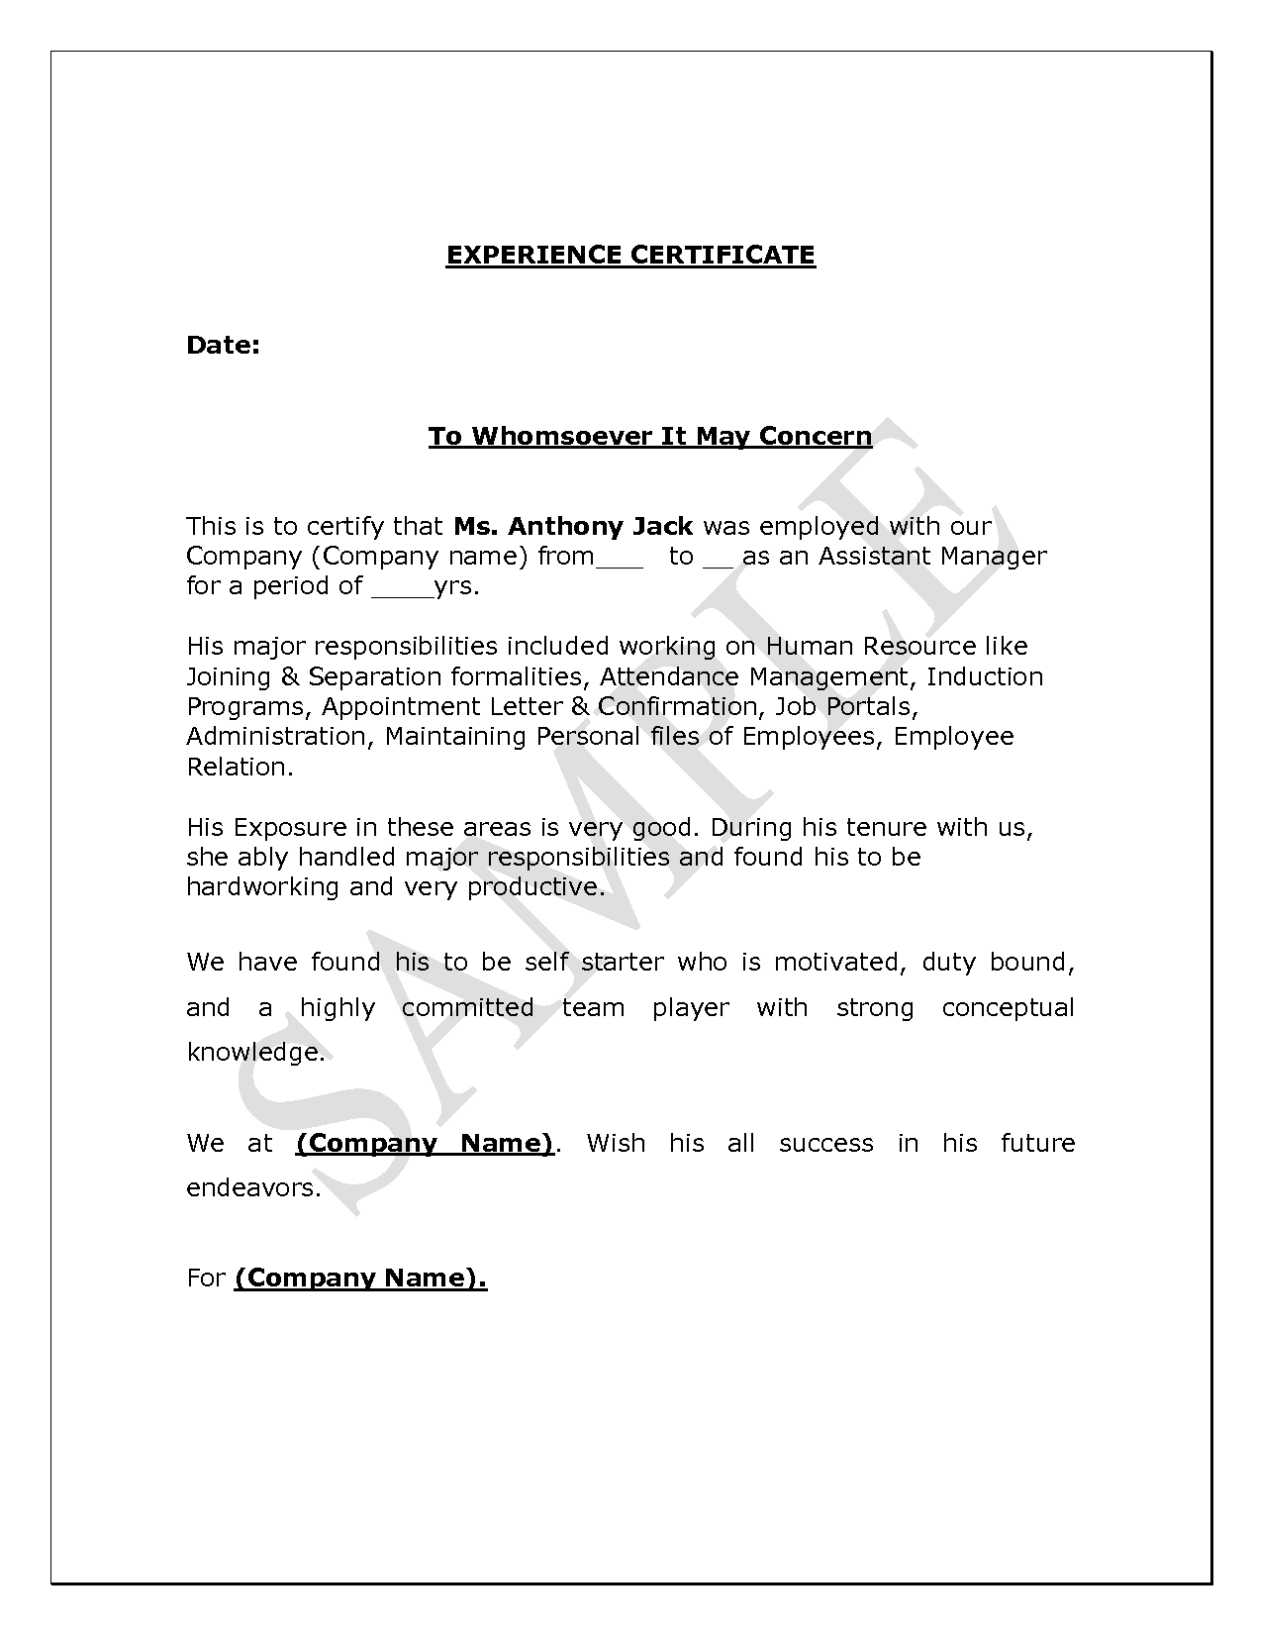 018 Personal Narrative Essay Topics Example Job Certificate Excellent For Middle School High Students Full